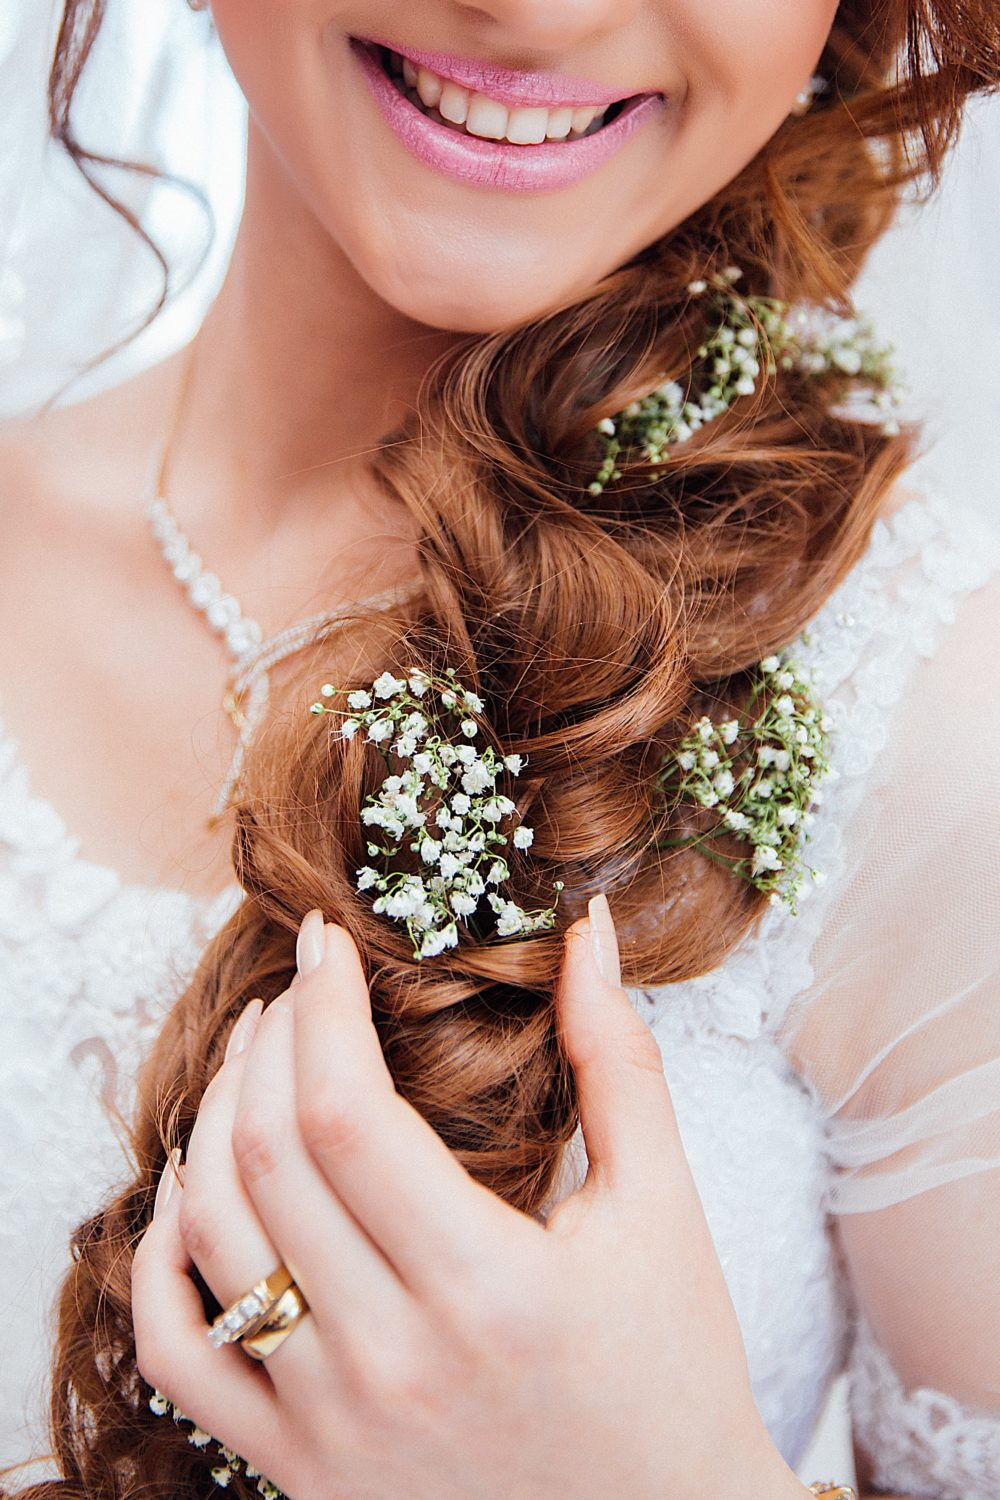 Best Jewelry Ideas for Your Wedding Day